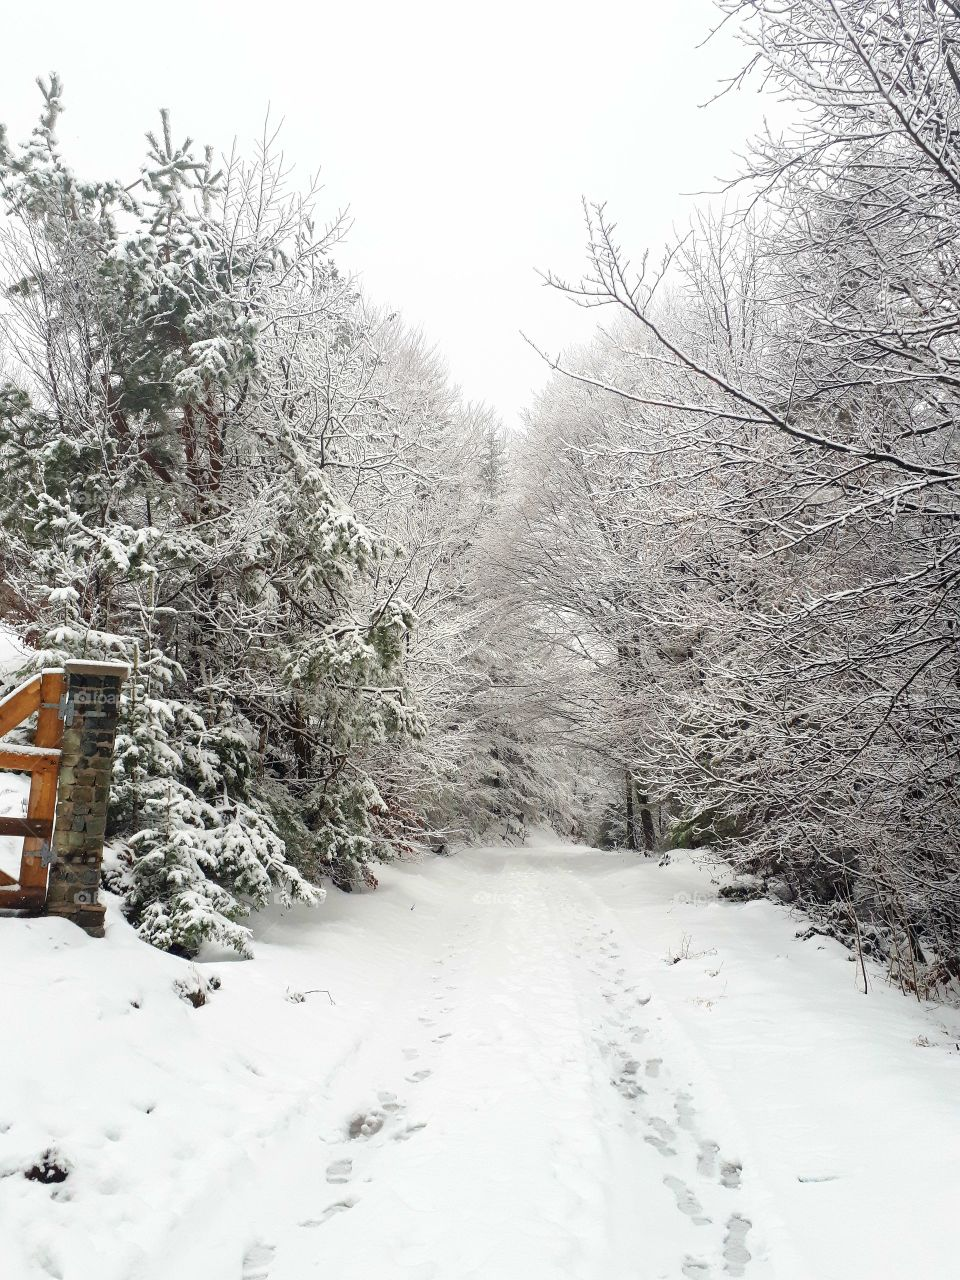 walks through the woods in winter and snow